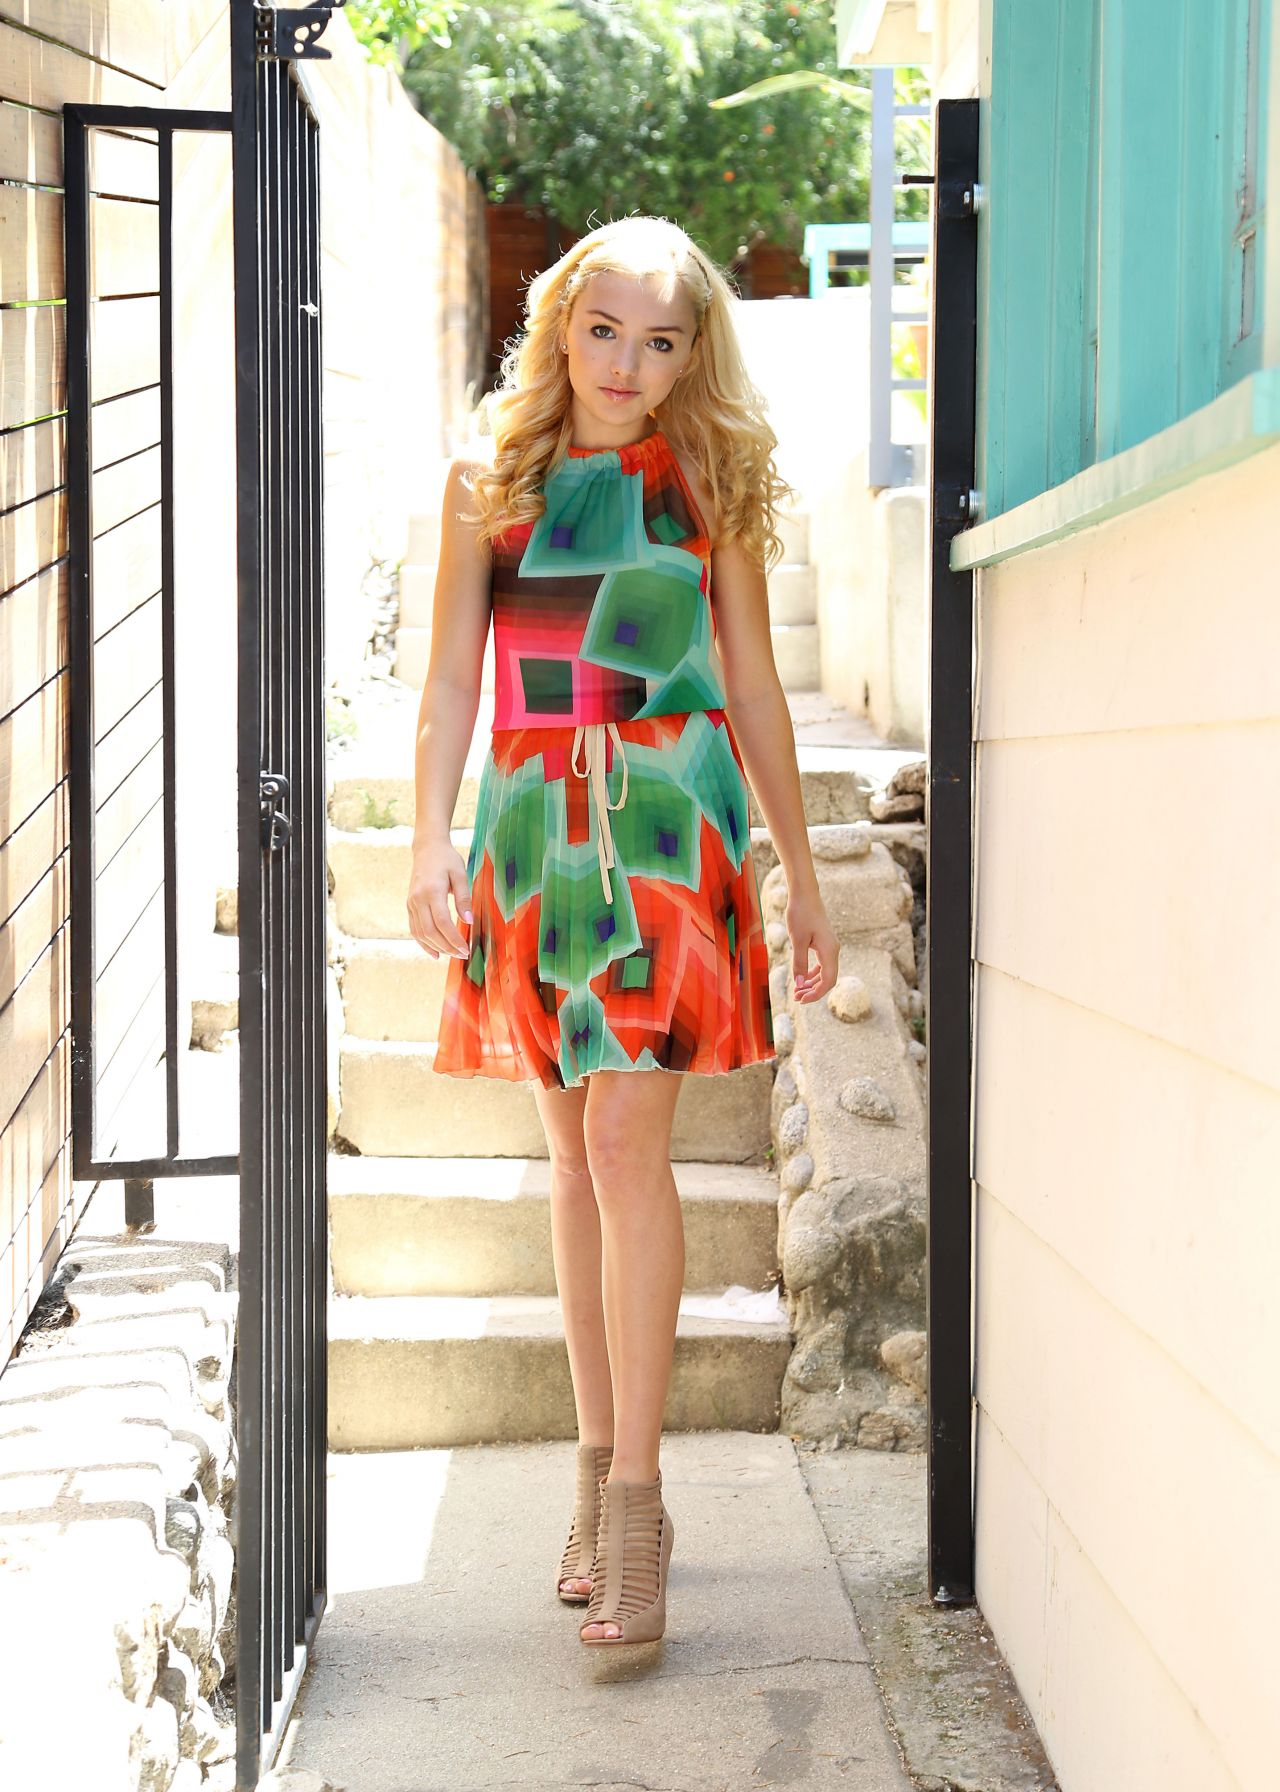 Peyton Roi List Photoshoot in Los Angeles - June 2014